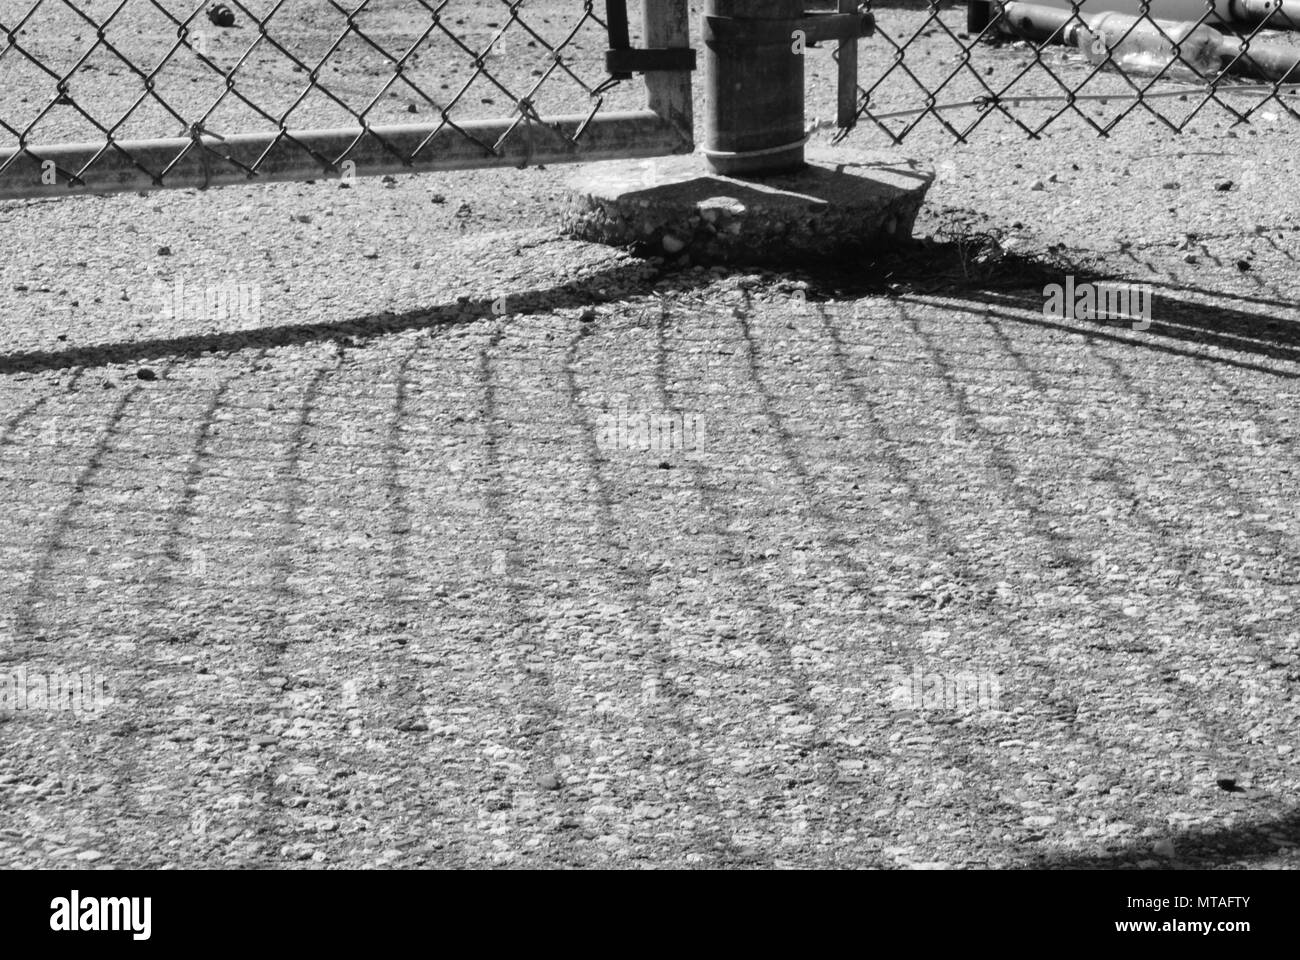 Paved ground with the shadow of a wire fence over it. - Stock Image